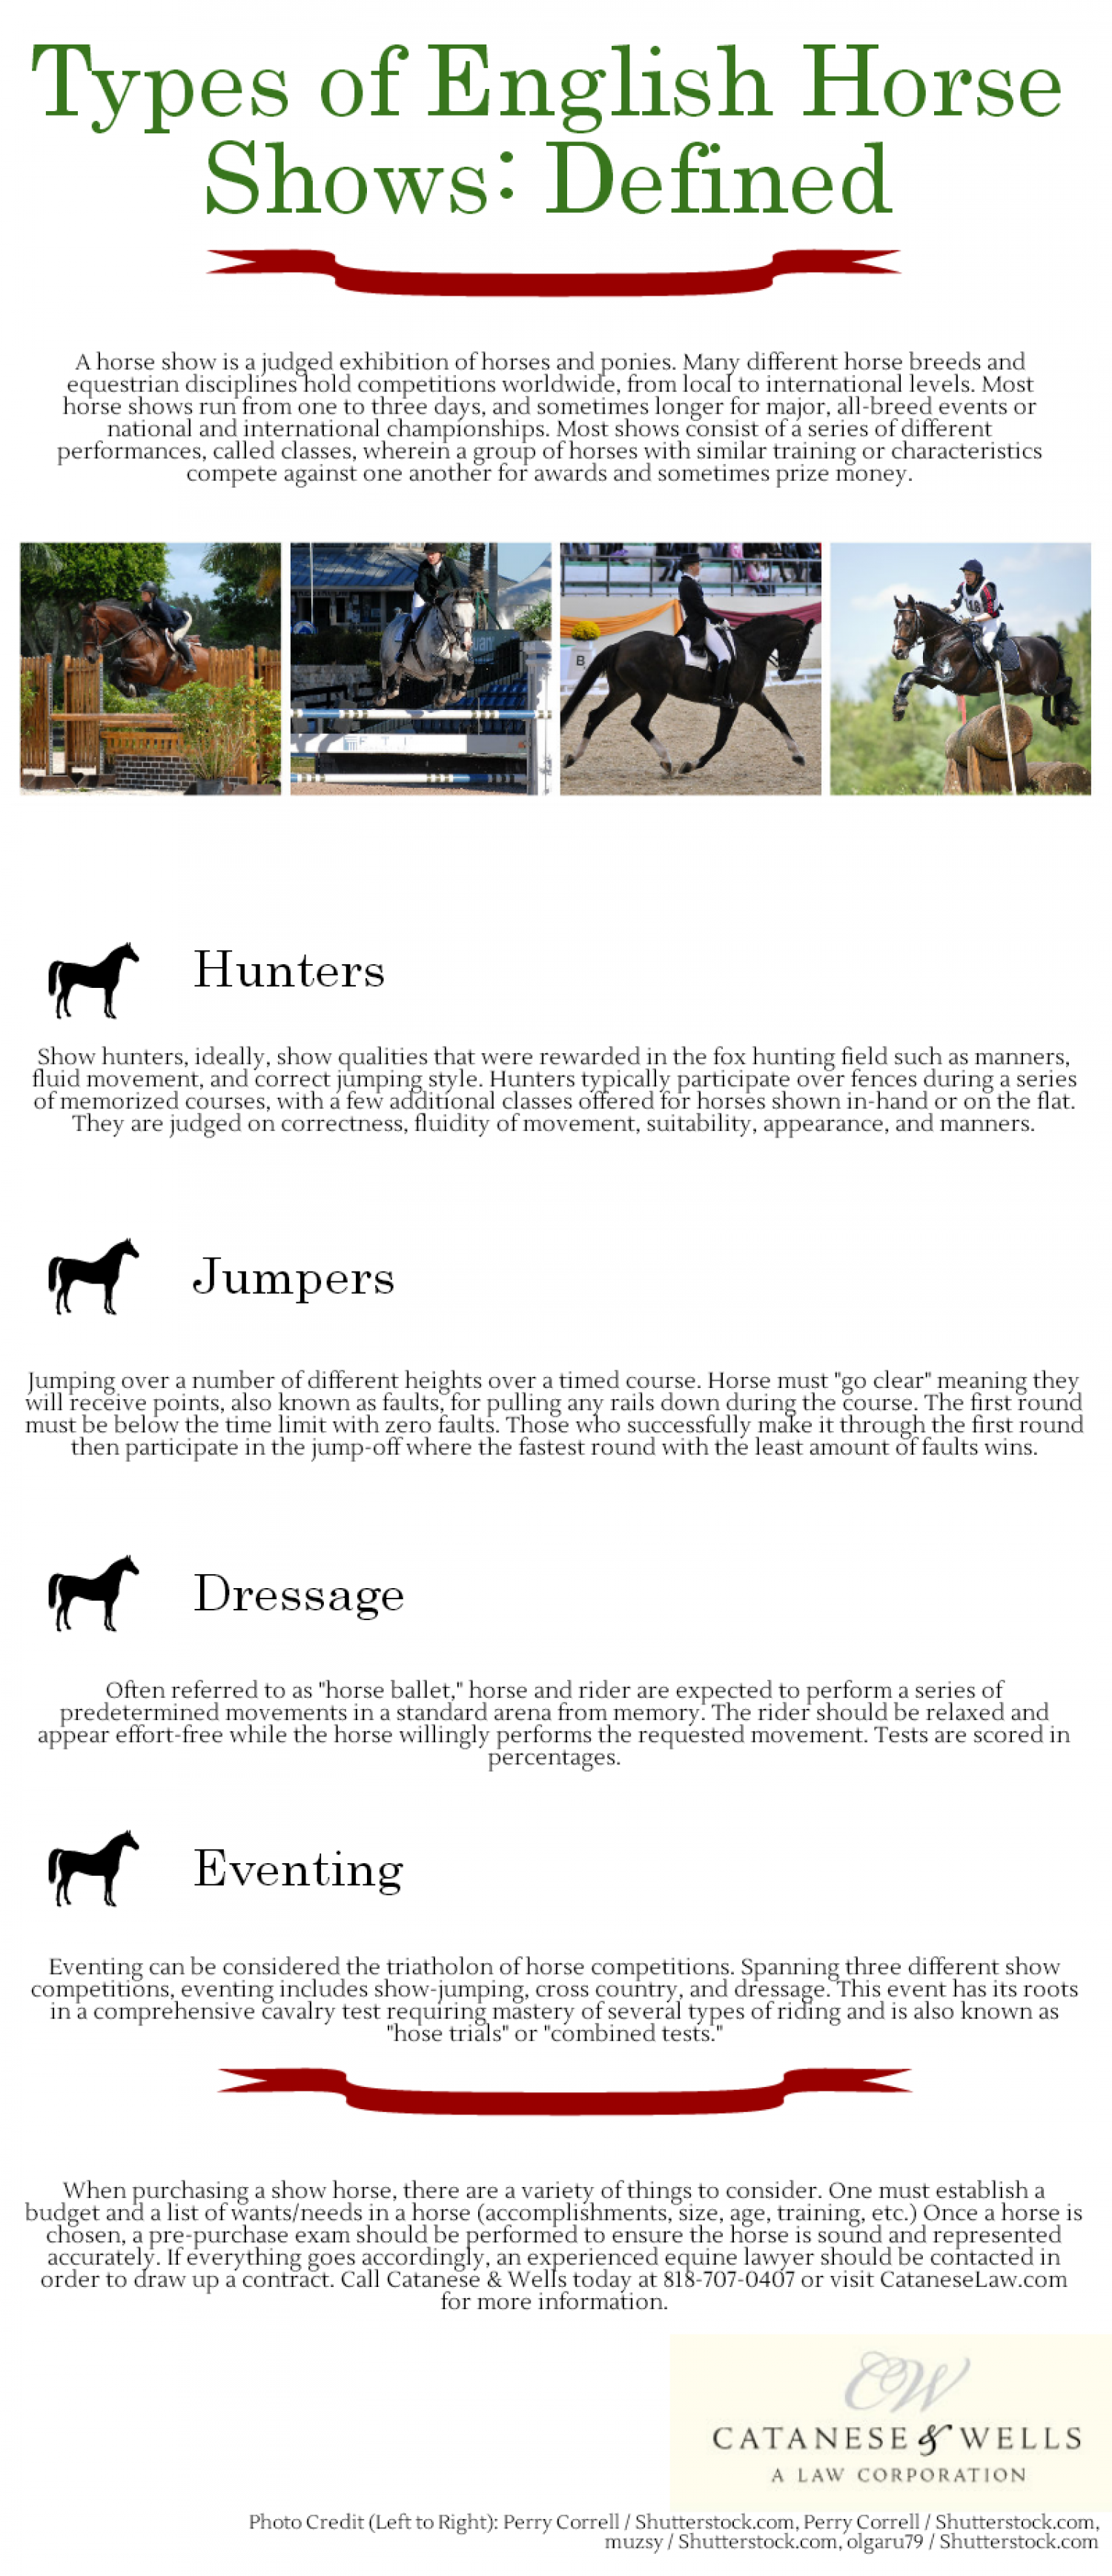 Types of English Horse Shows: Defined Infographic